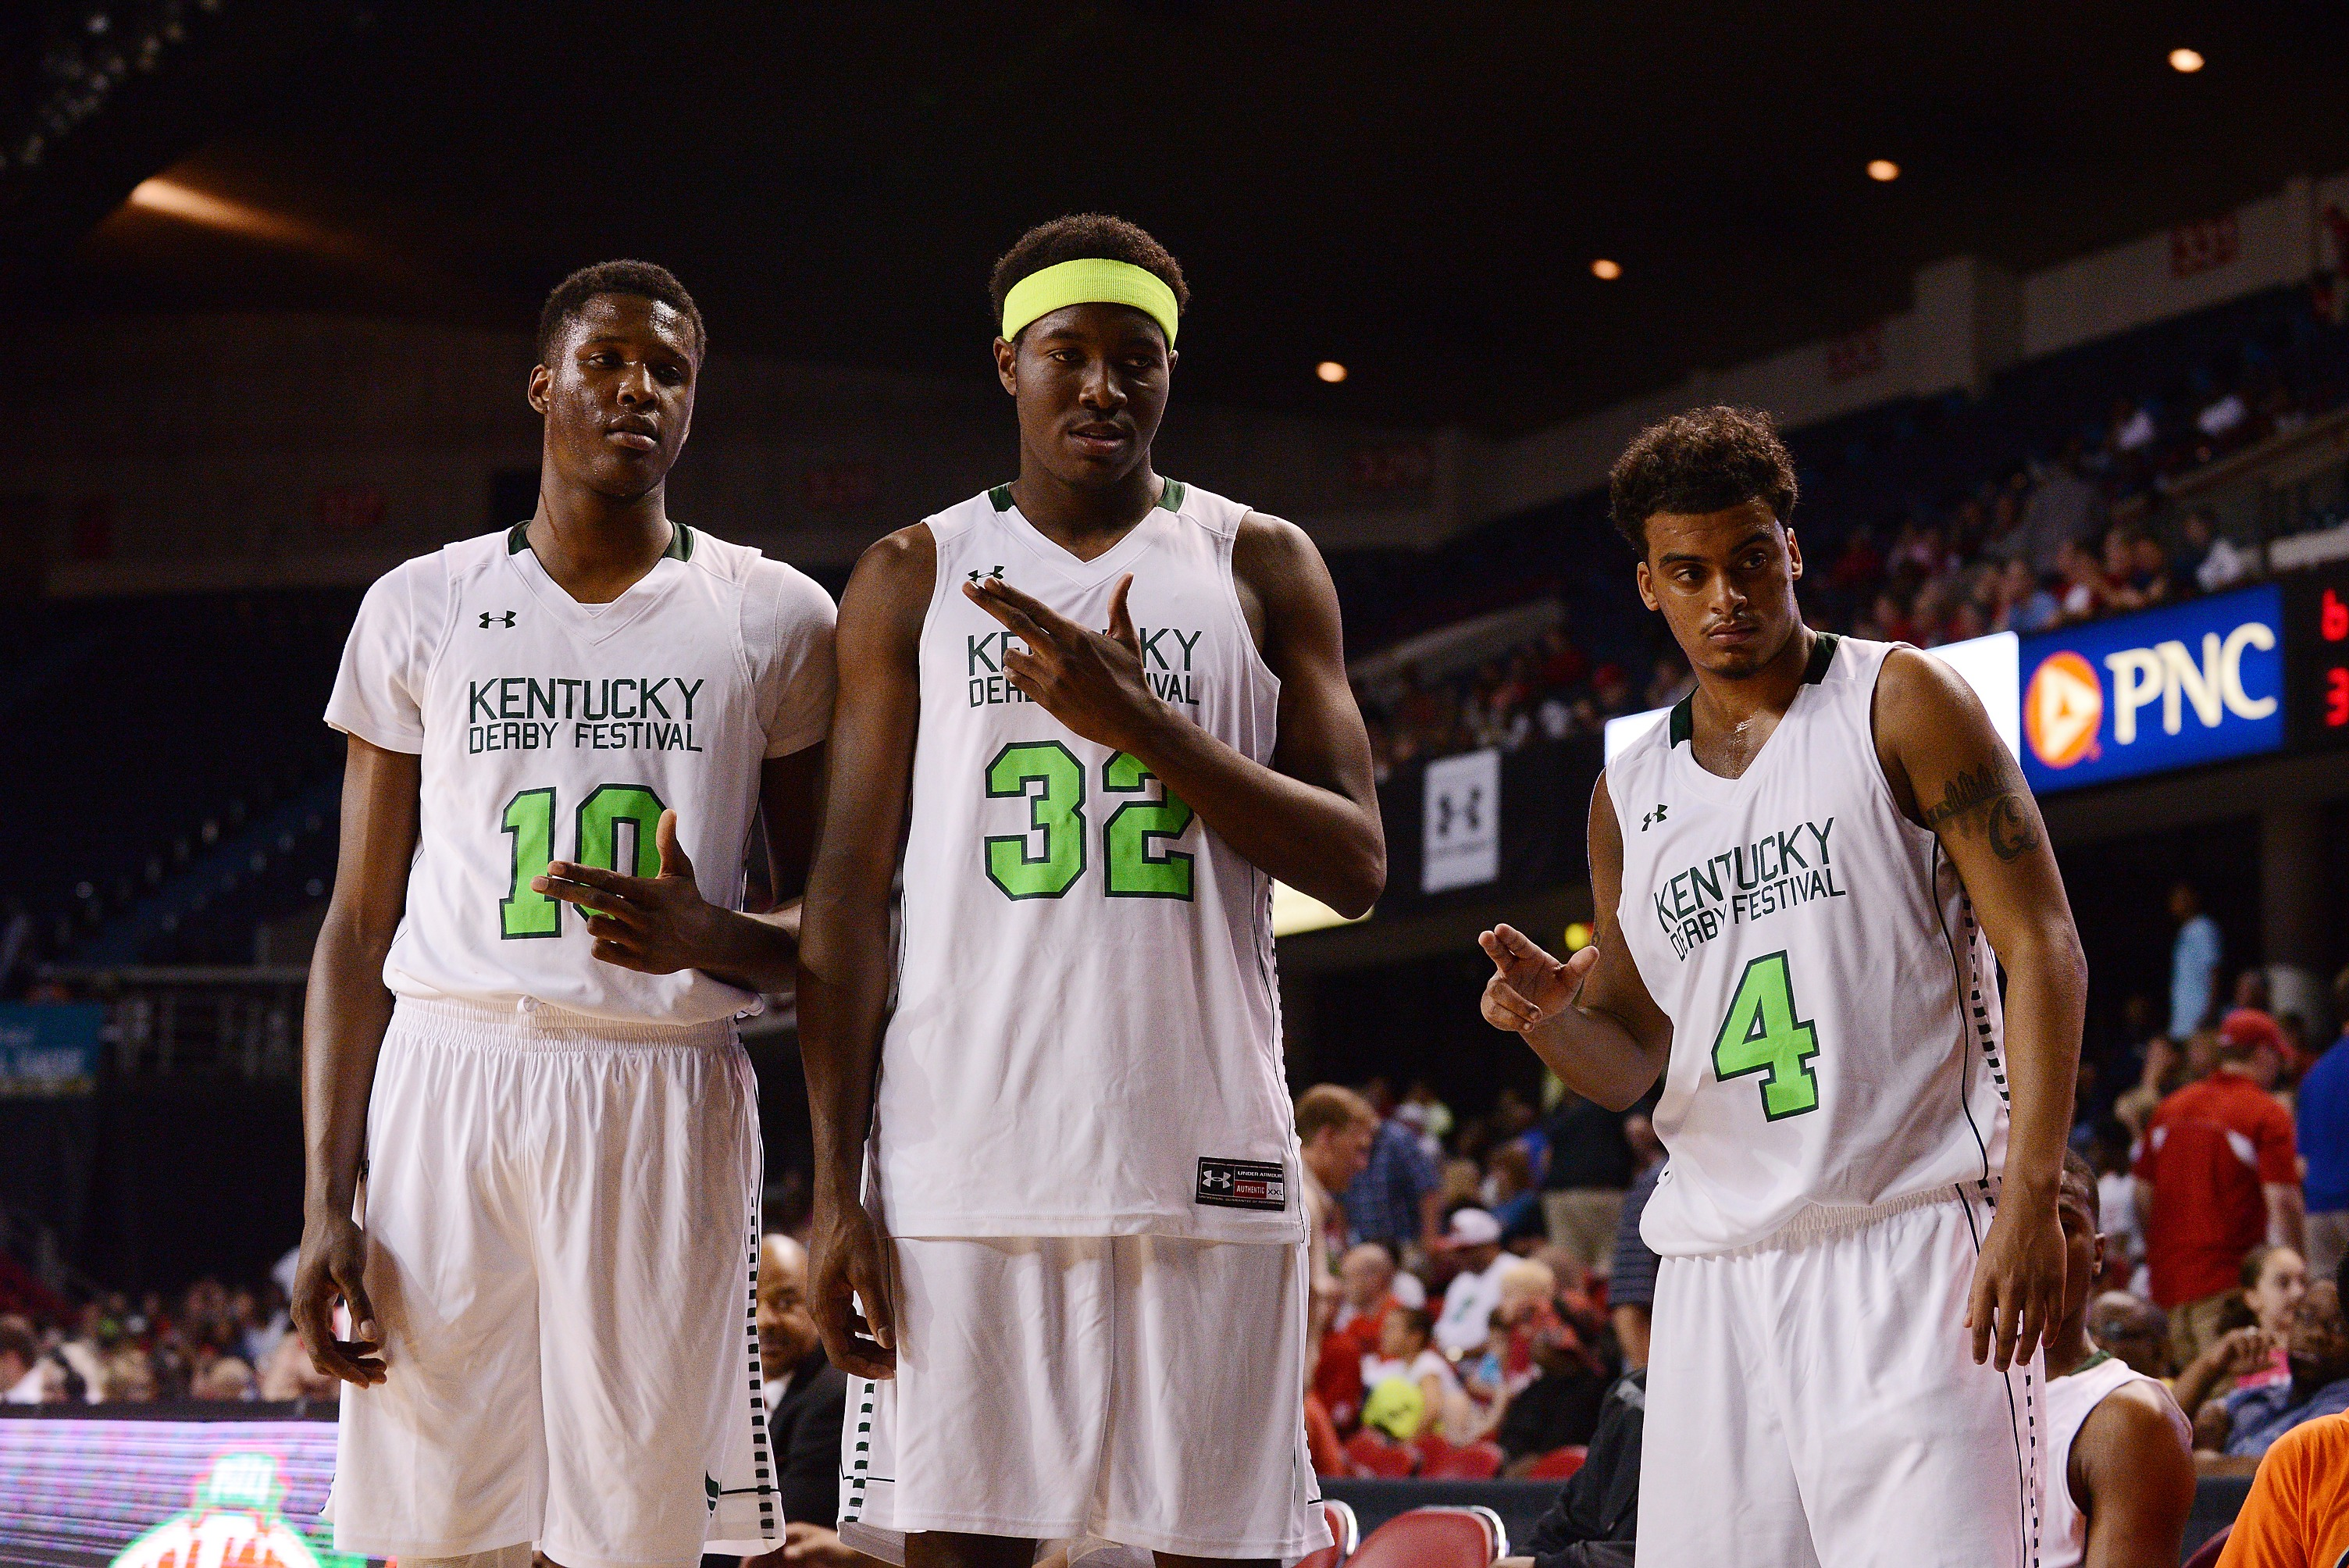 Jaylen Johnson, Chinanu Onuaku, and Quentin Snider 2014 Kentucky Derby Classic Photo by Adam Creech